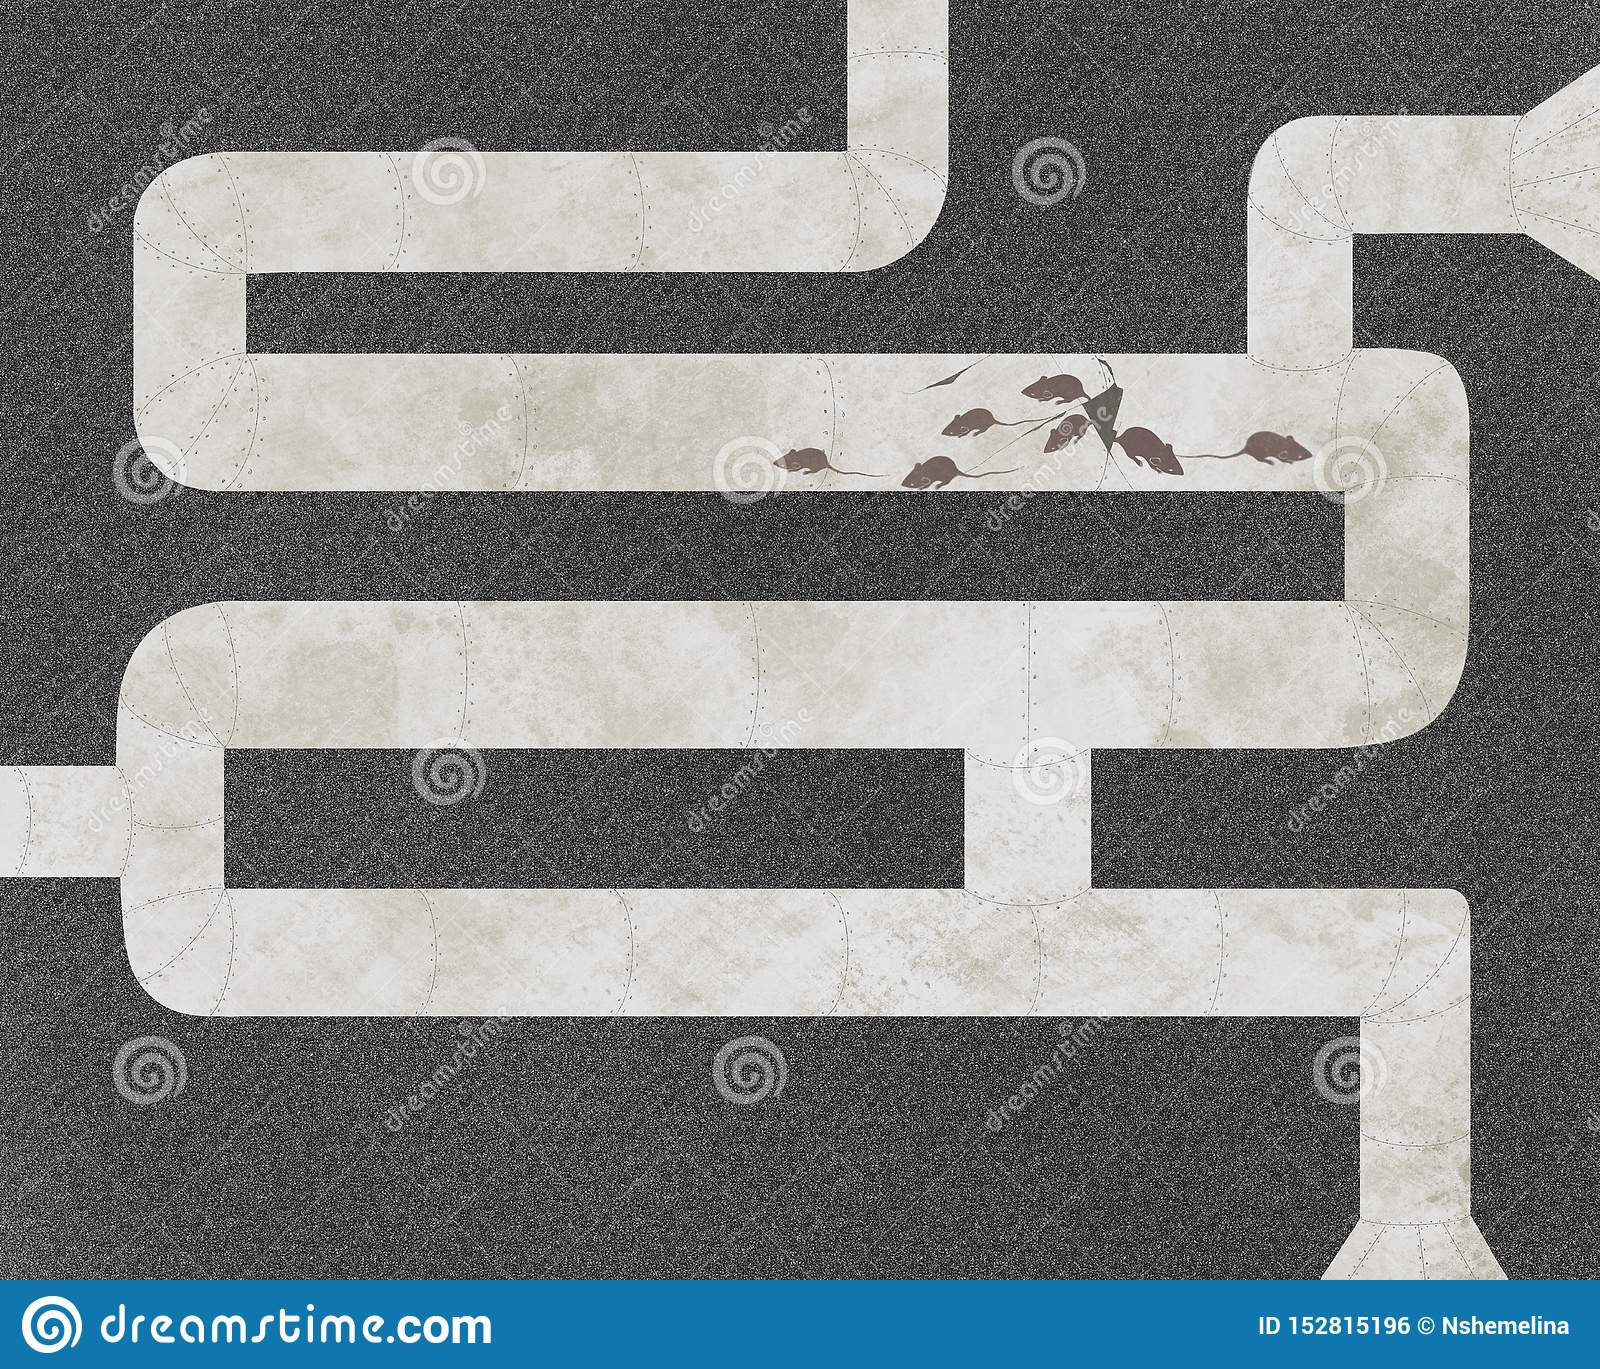 The mice and pipes, abstract graphic illustration